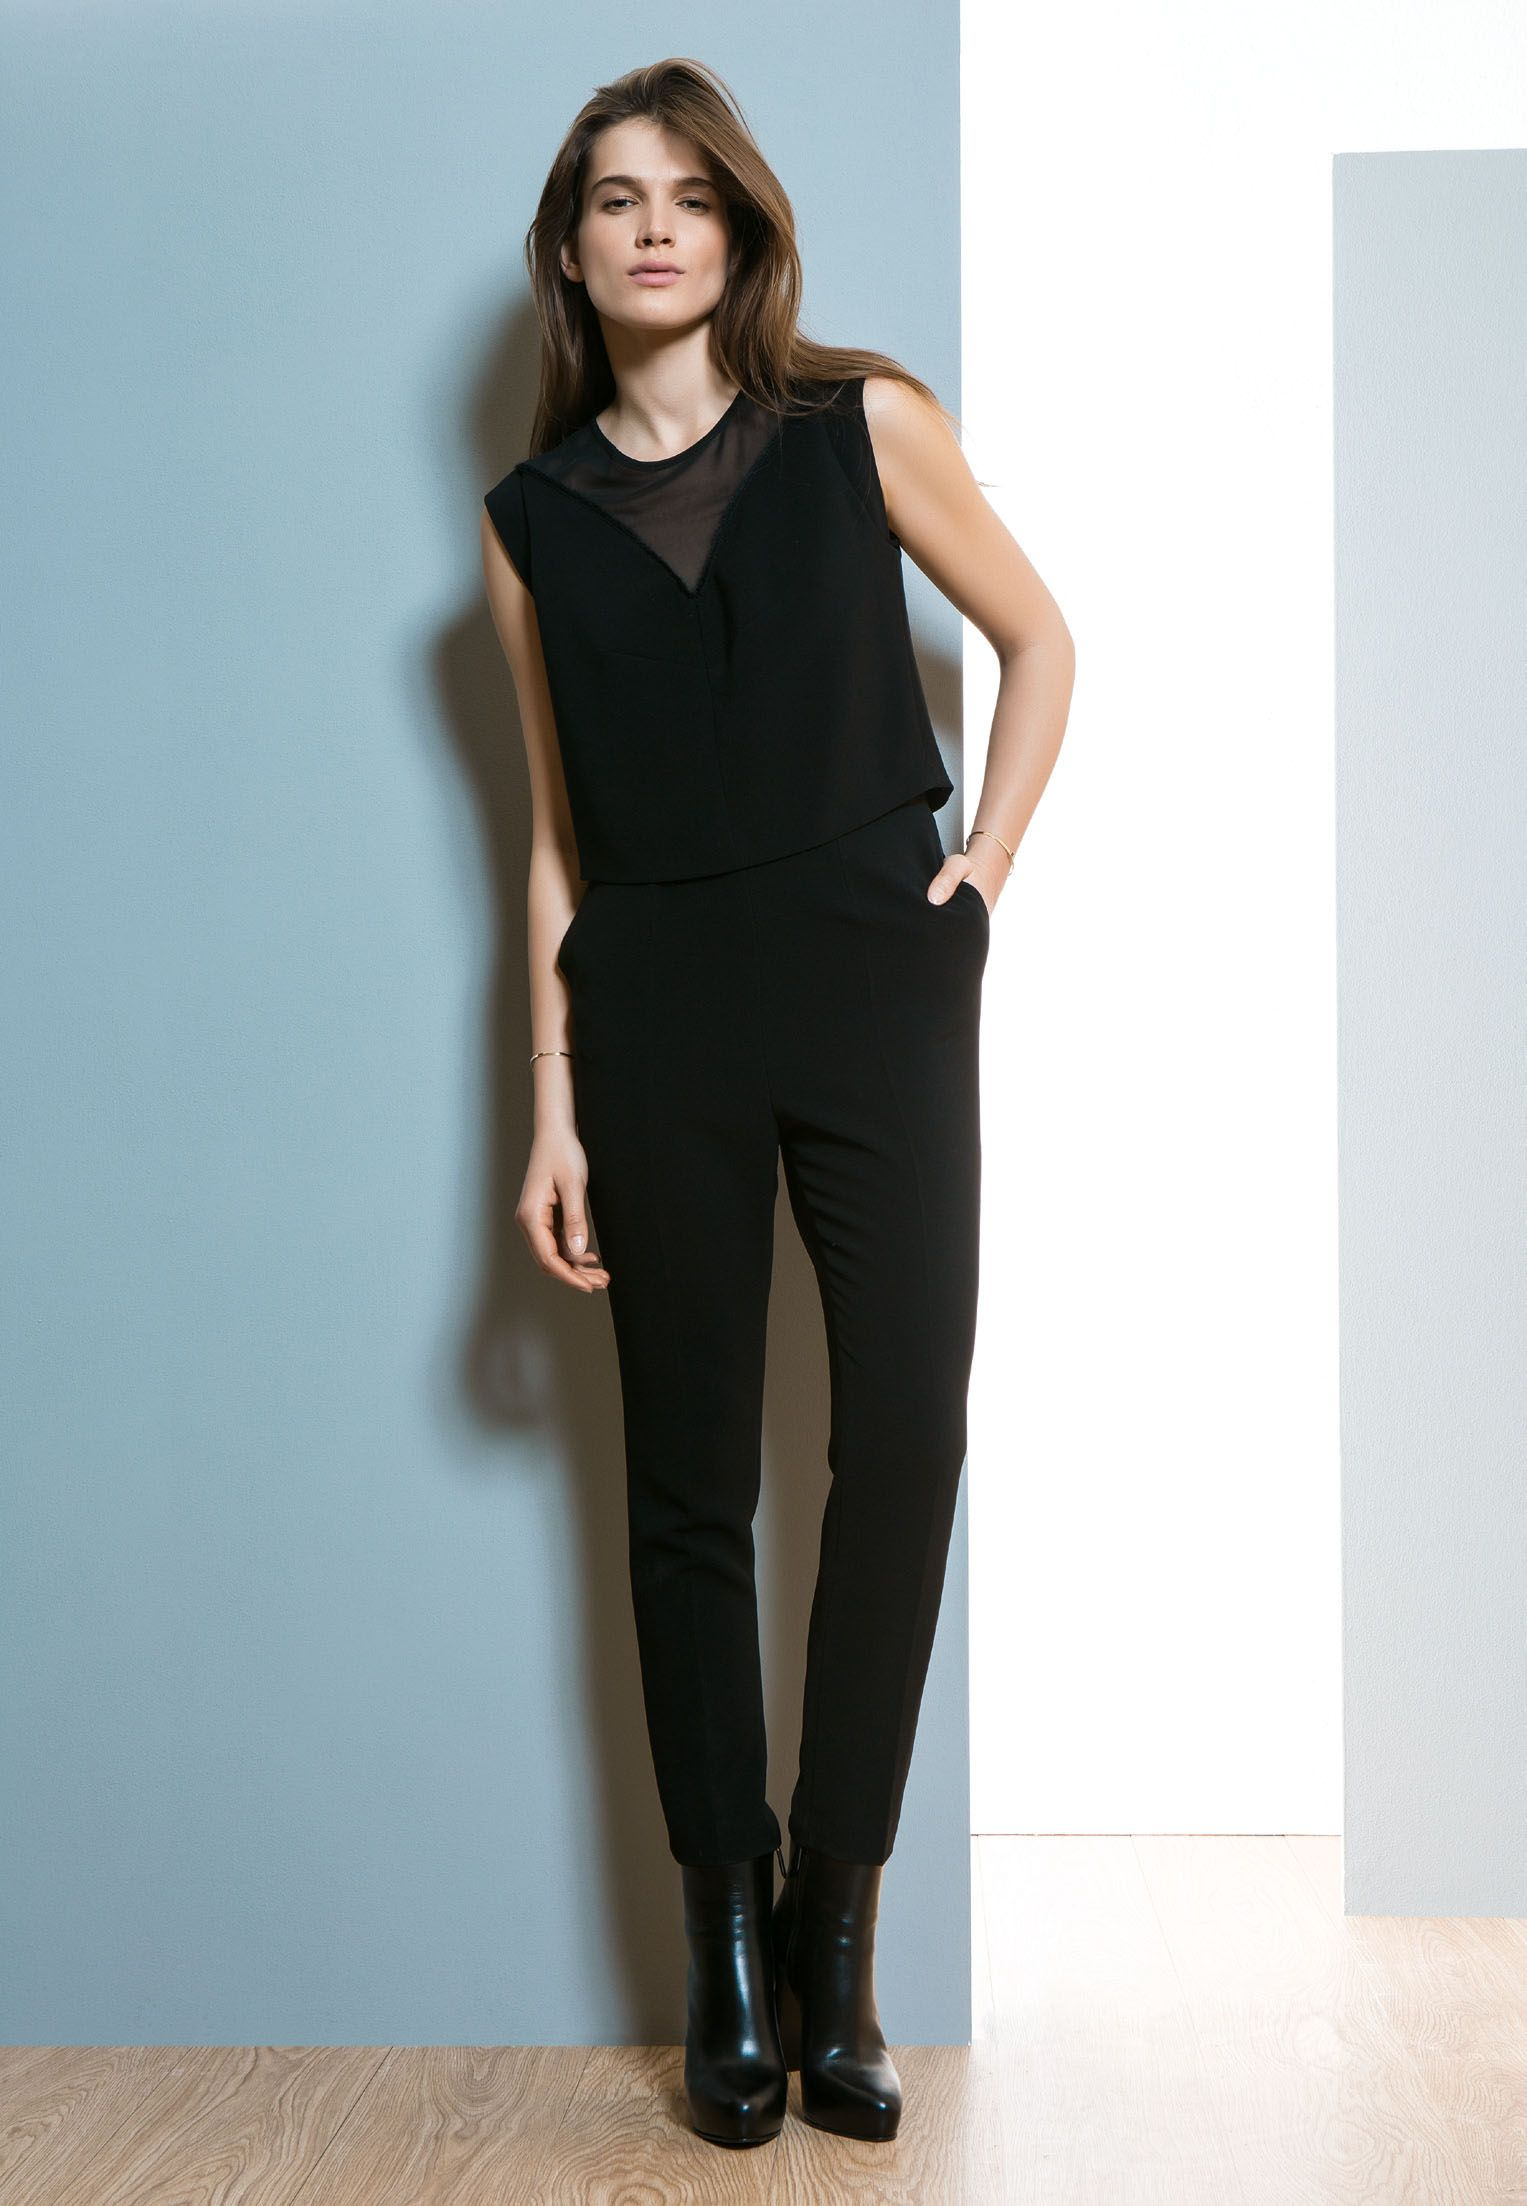 jumpsuit - Caractère 2015/2016 Autumn/Winter Collection